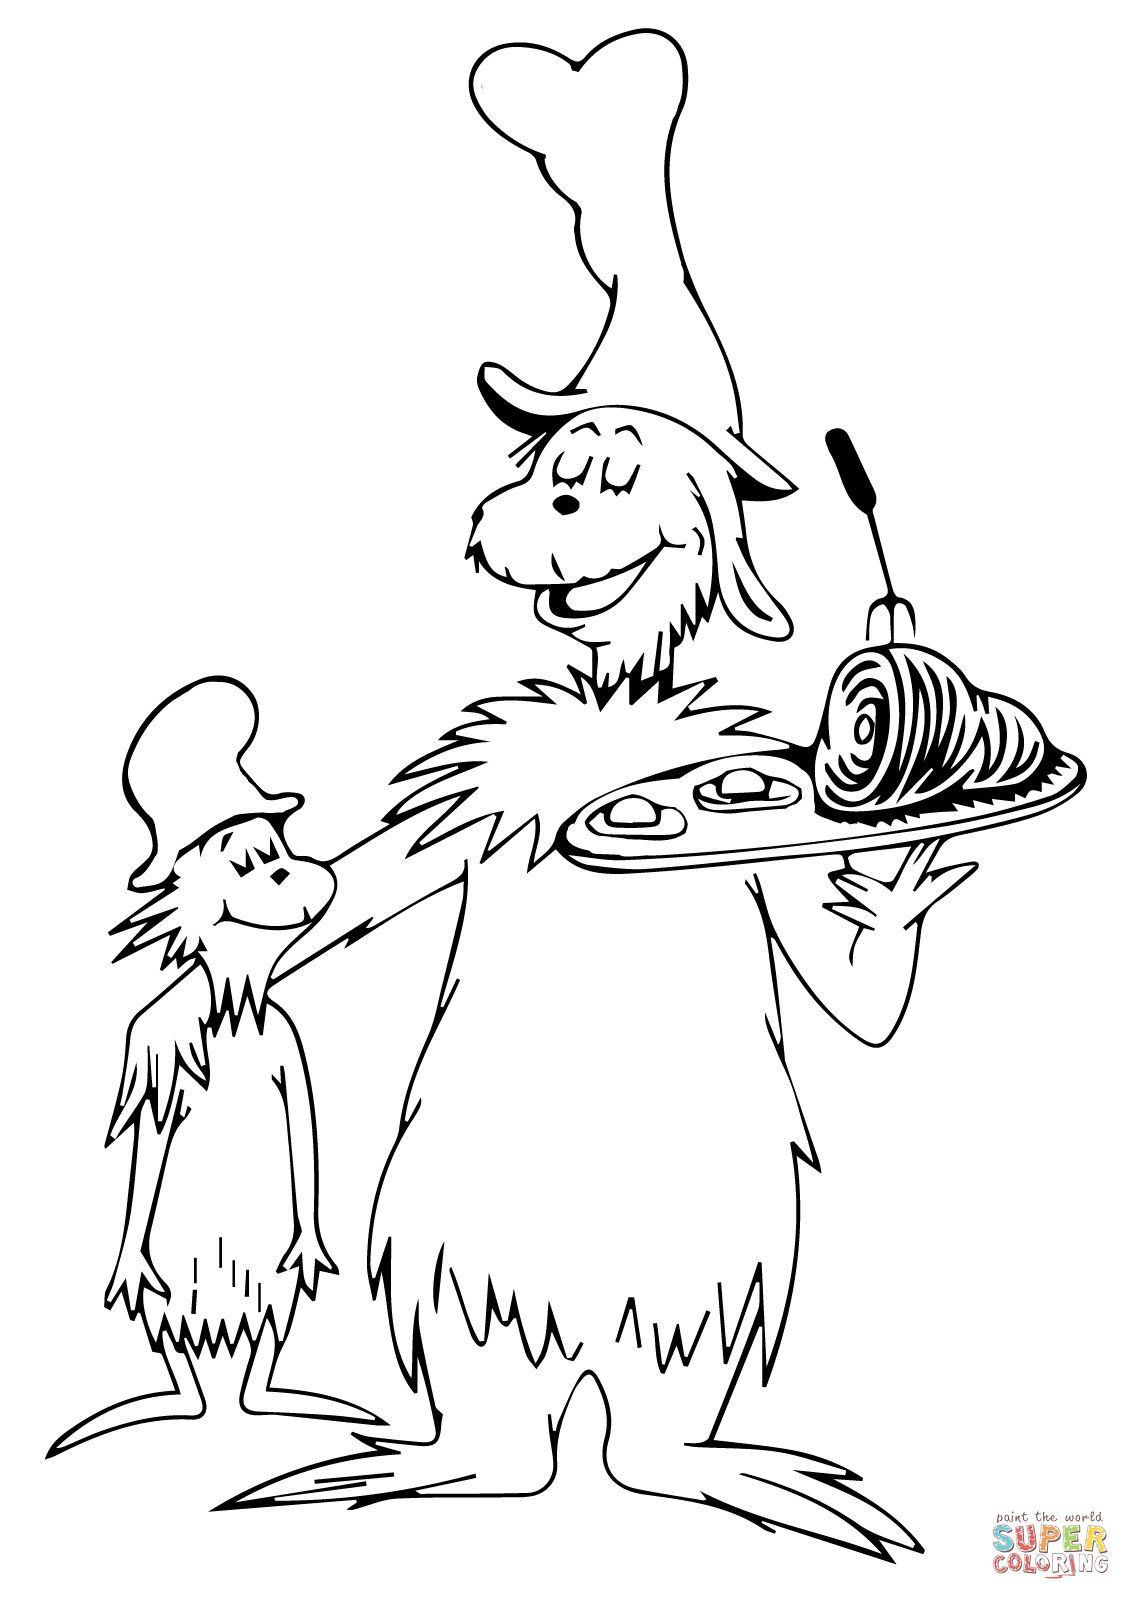 Green eggs and ham coloring page | Kinder bilingüe | Pinterest ...